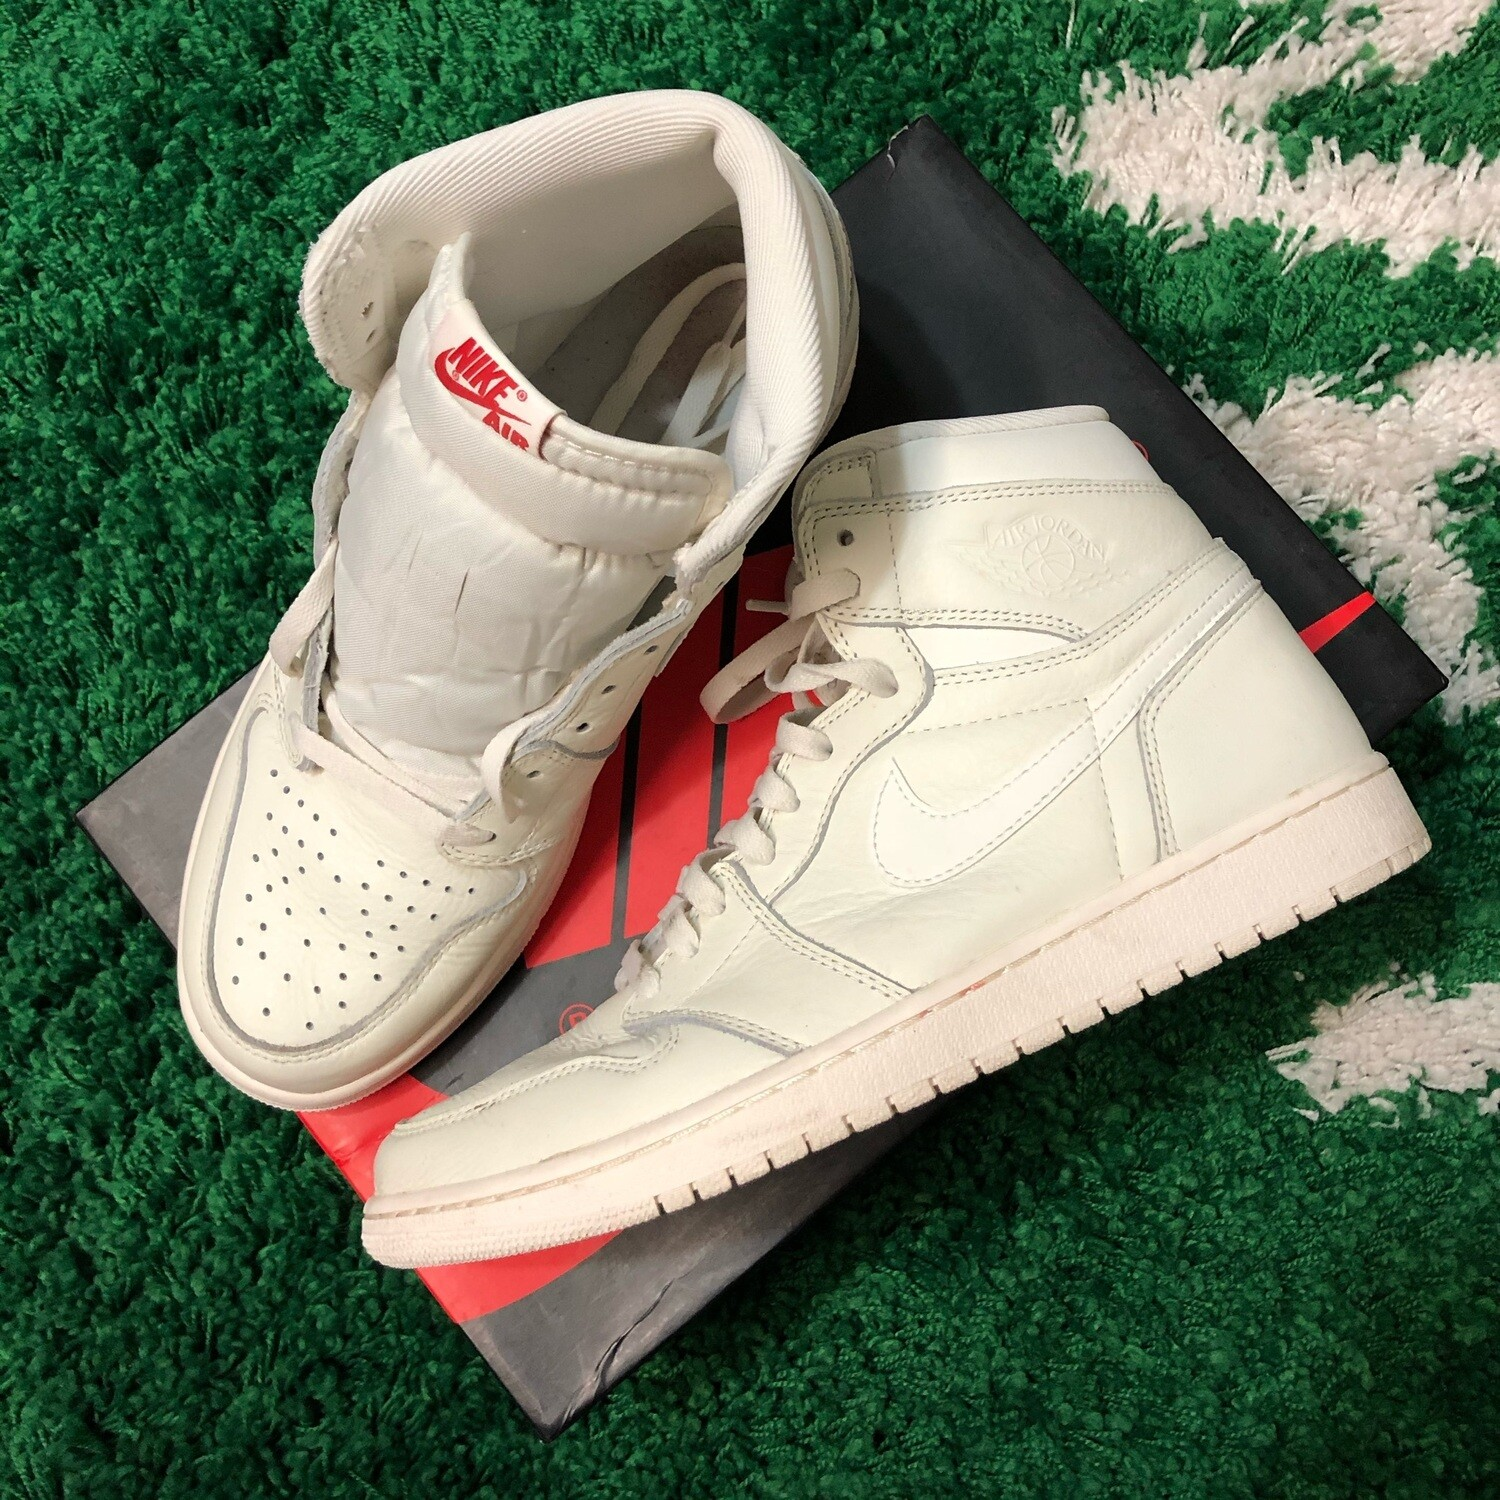 Air Jordan 1 Sail Size 11